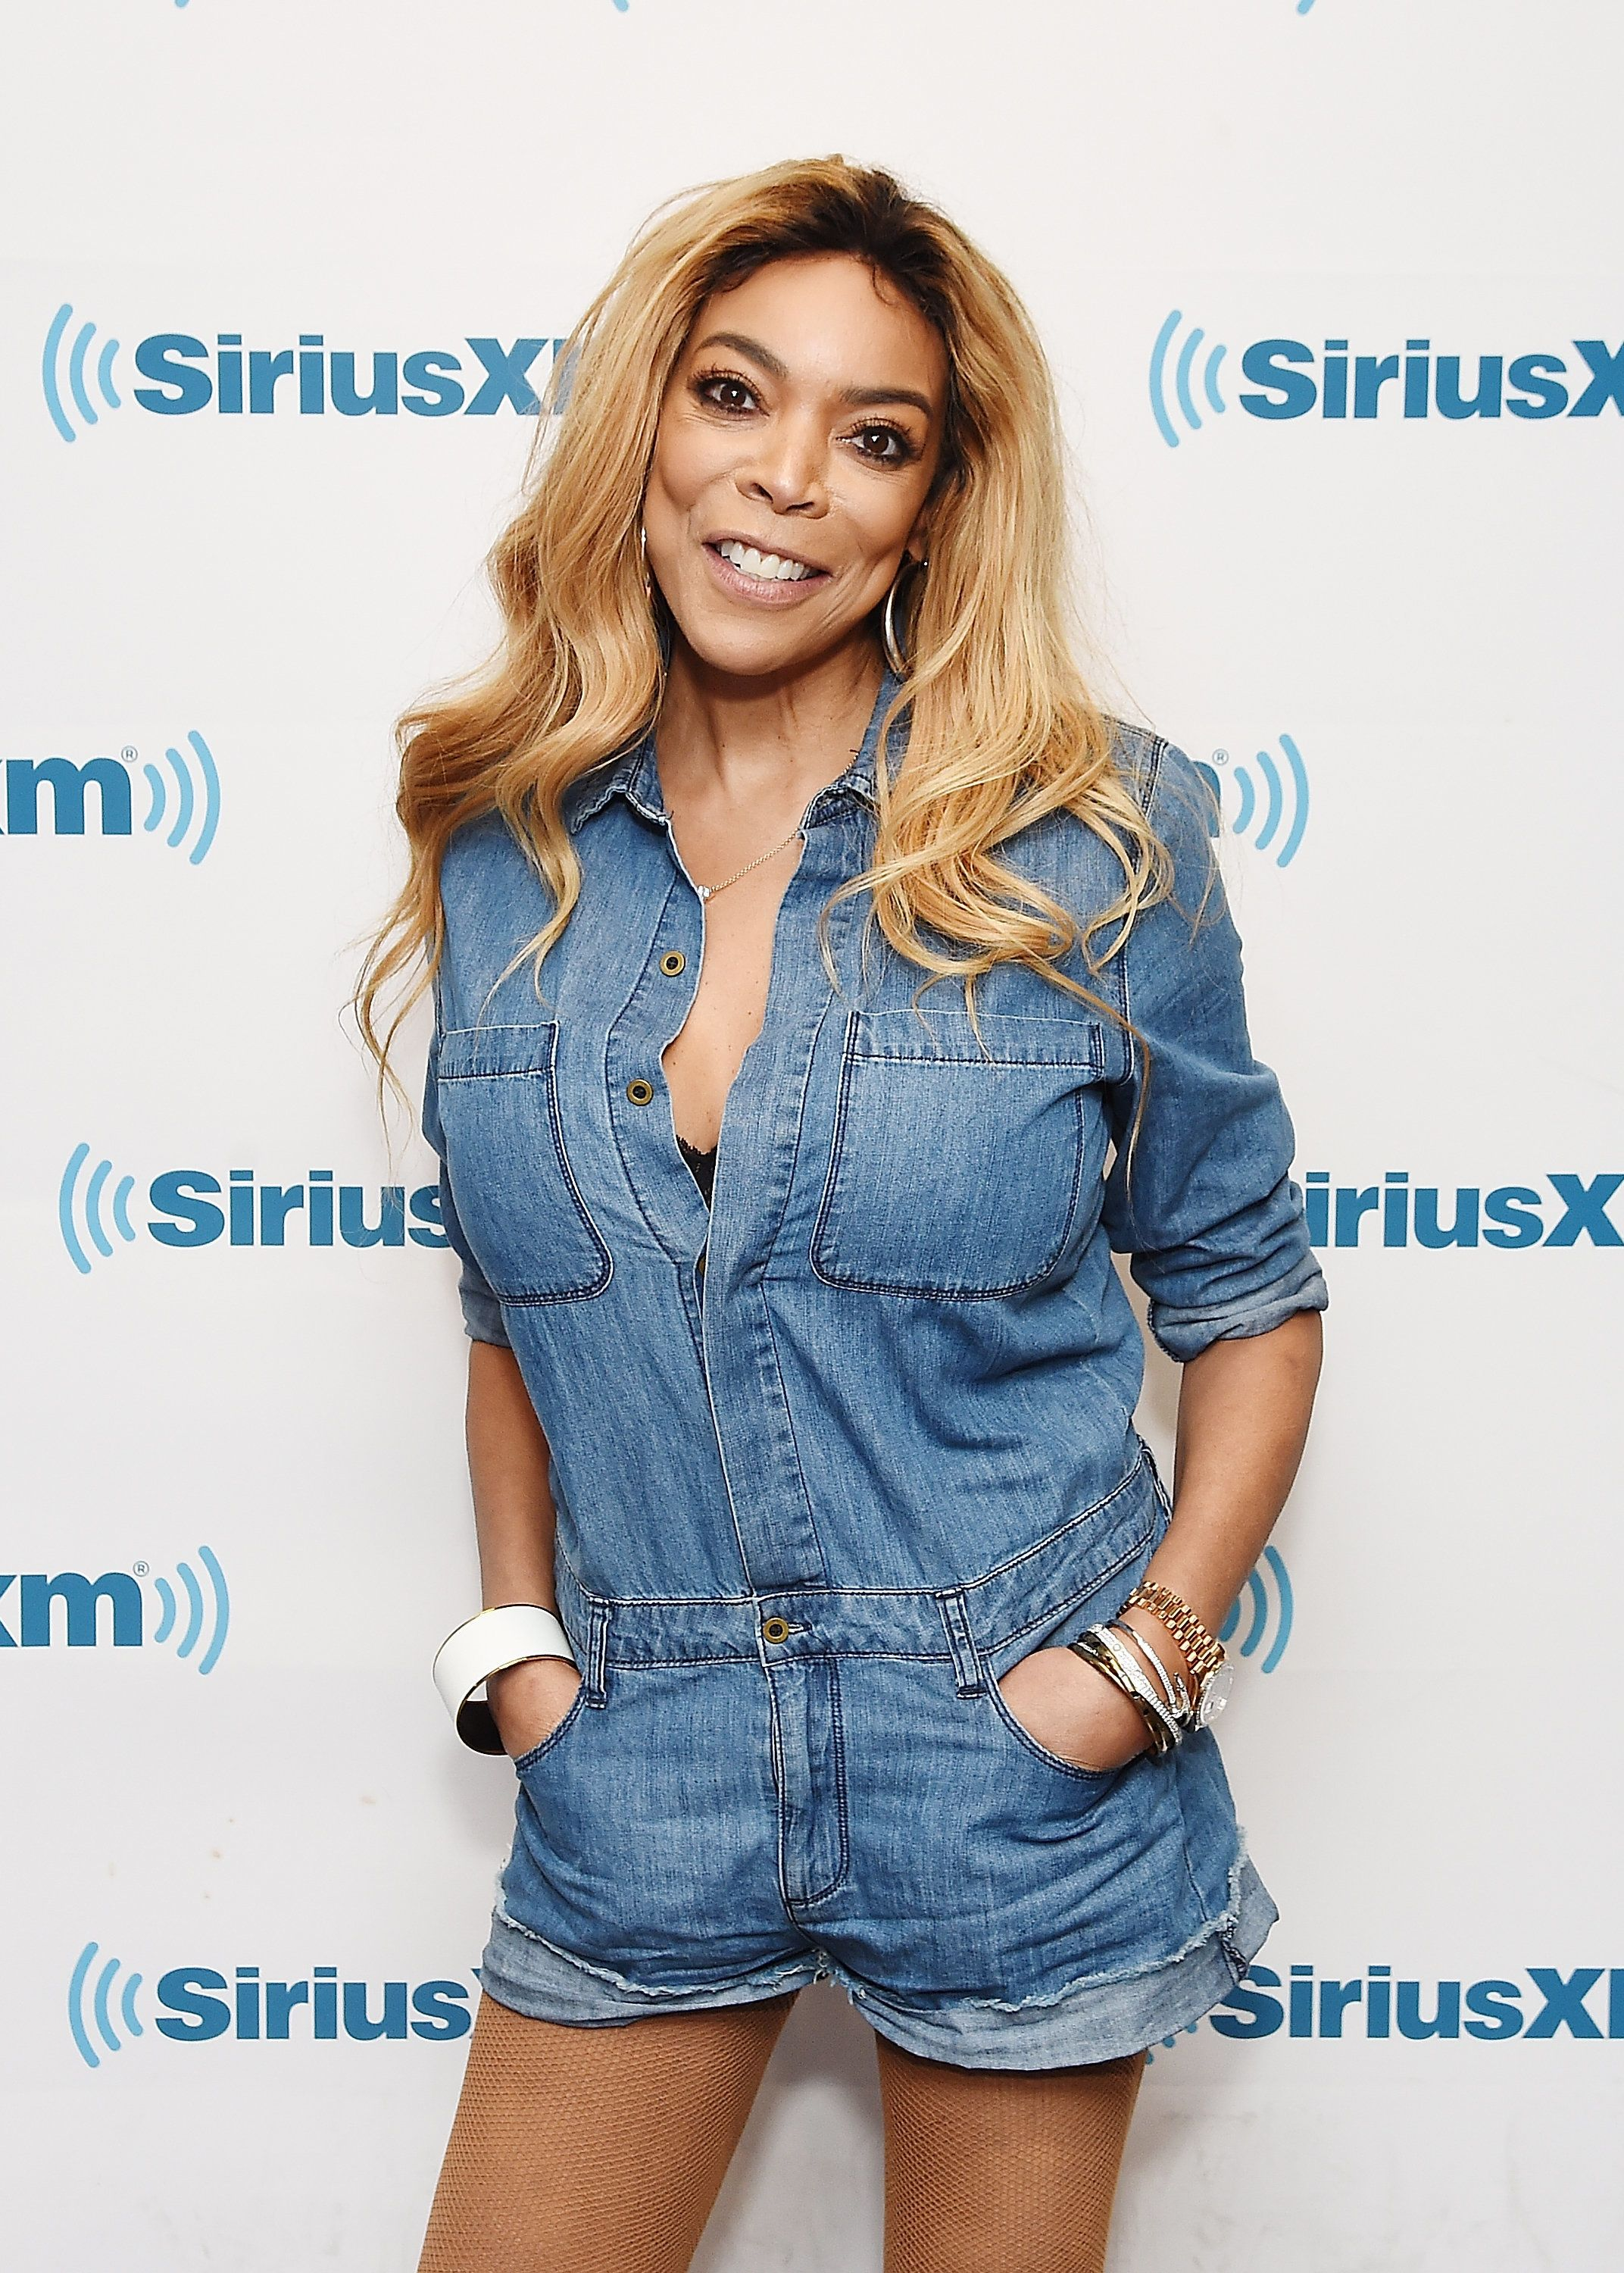 NEW YORK, NY - JULY 13:  American televison host Wendy Williams visits SiriusXM Studios on July 13, 2017 in New York City.  (Photo by Nicholas Hunt/Getty Images)